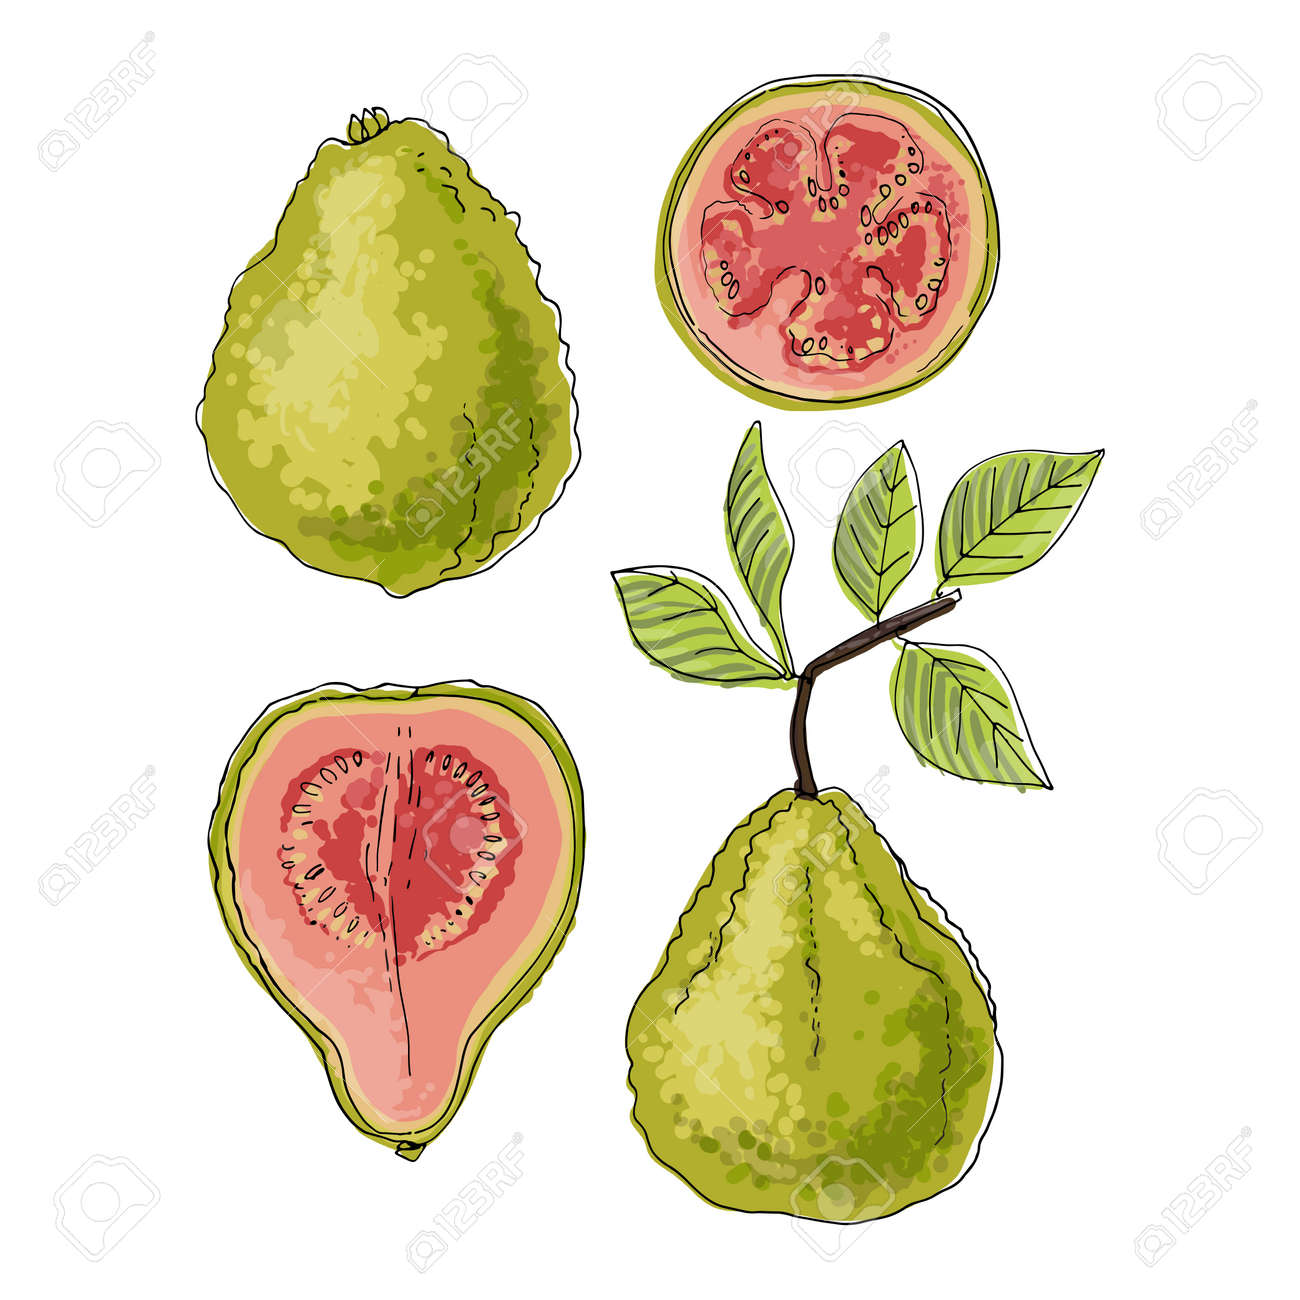 Psidium, Guava fruit Vector food icons of fruits. Colored sketch of food products. - 170892770